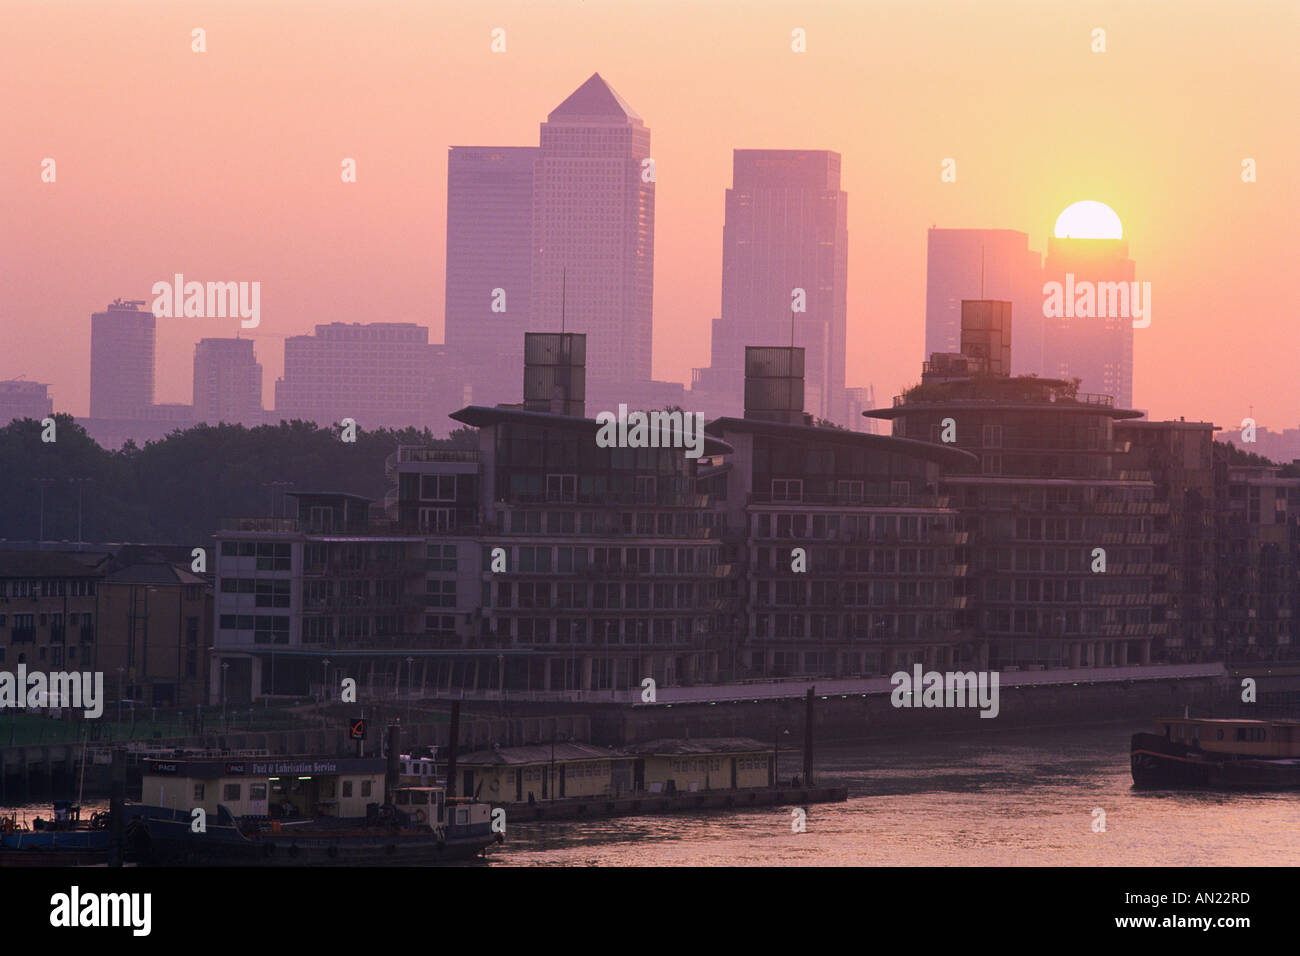 England, London, Docklands, Canary Wharf and Docklands Skyline - Stock Image